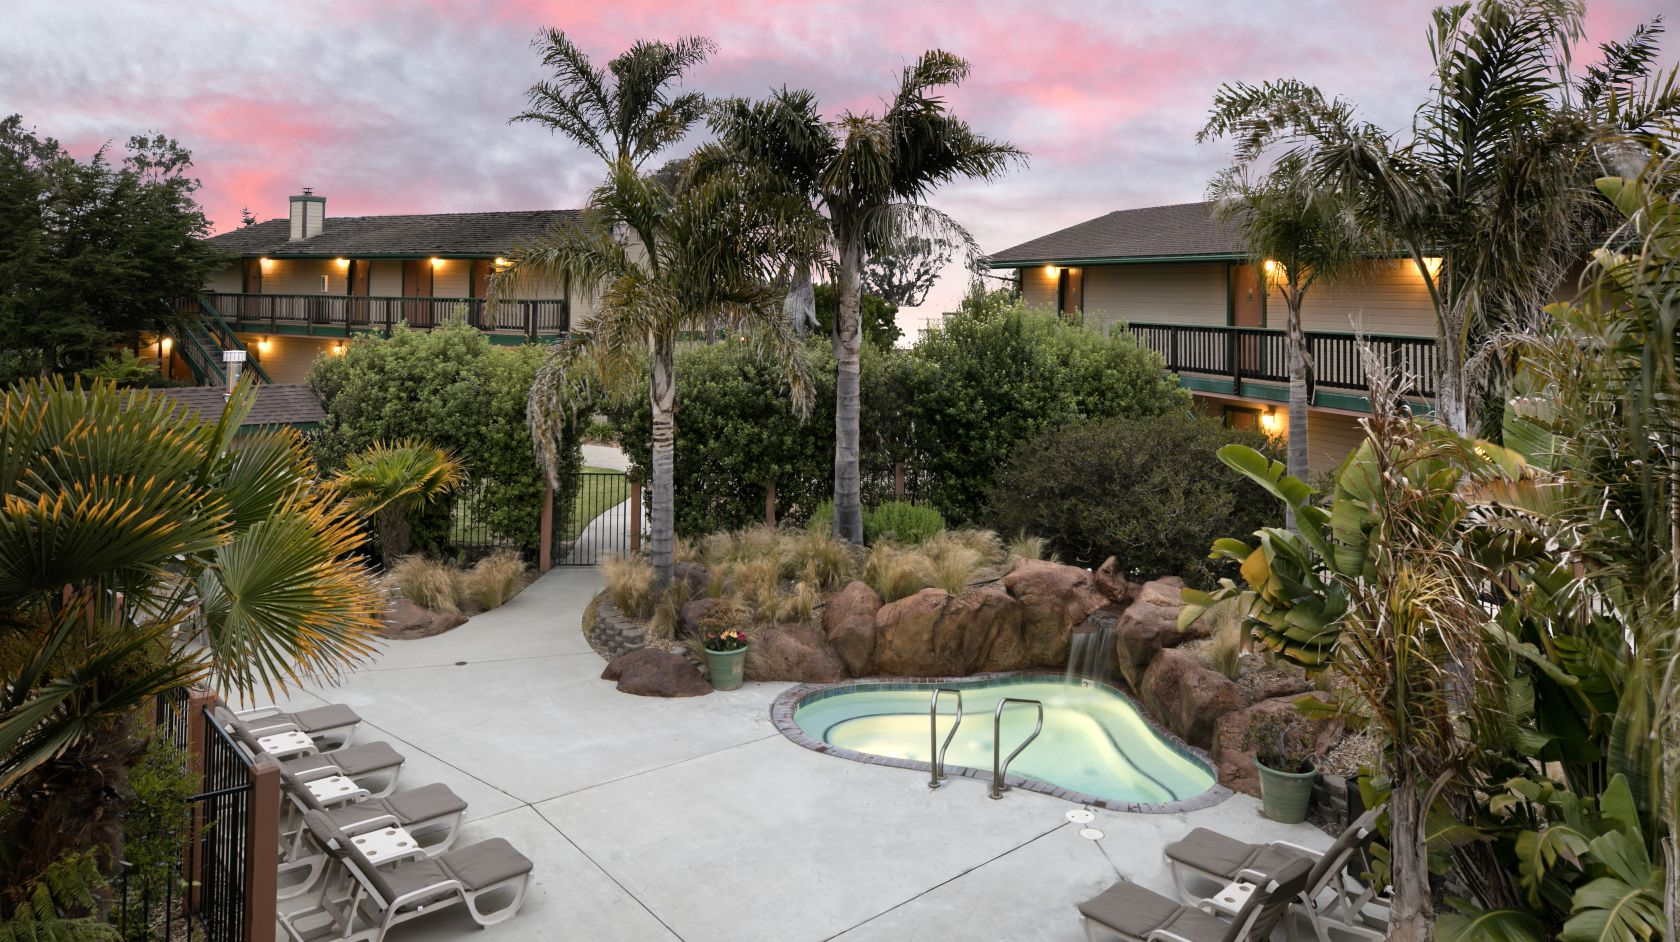 Secluded spa and jacuzzi during sunset at Sea Pines Golf Resort in Los Osos